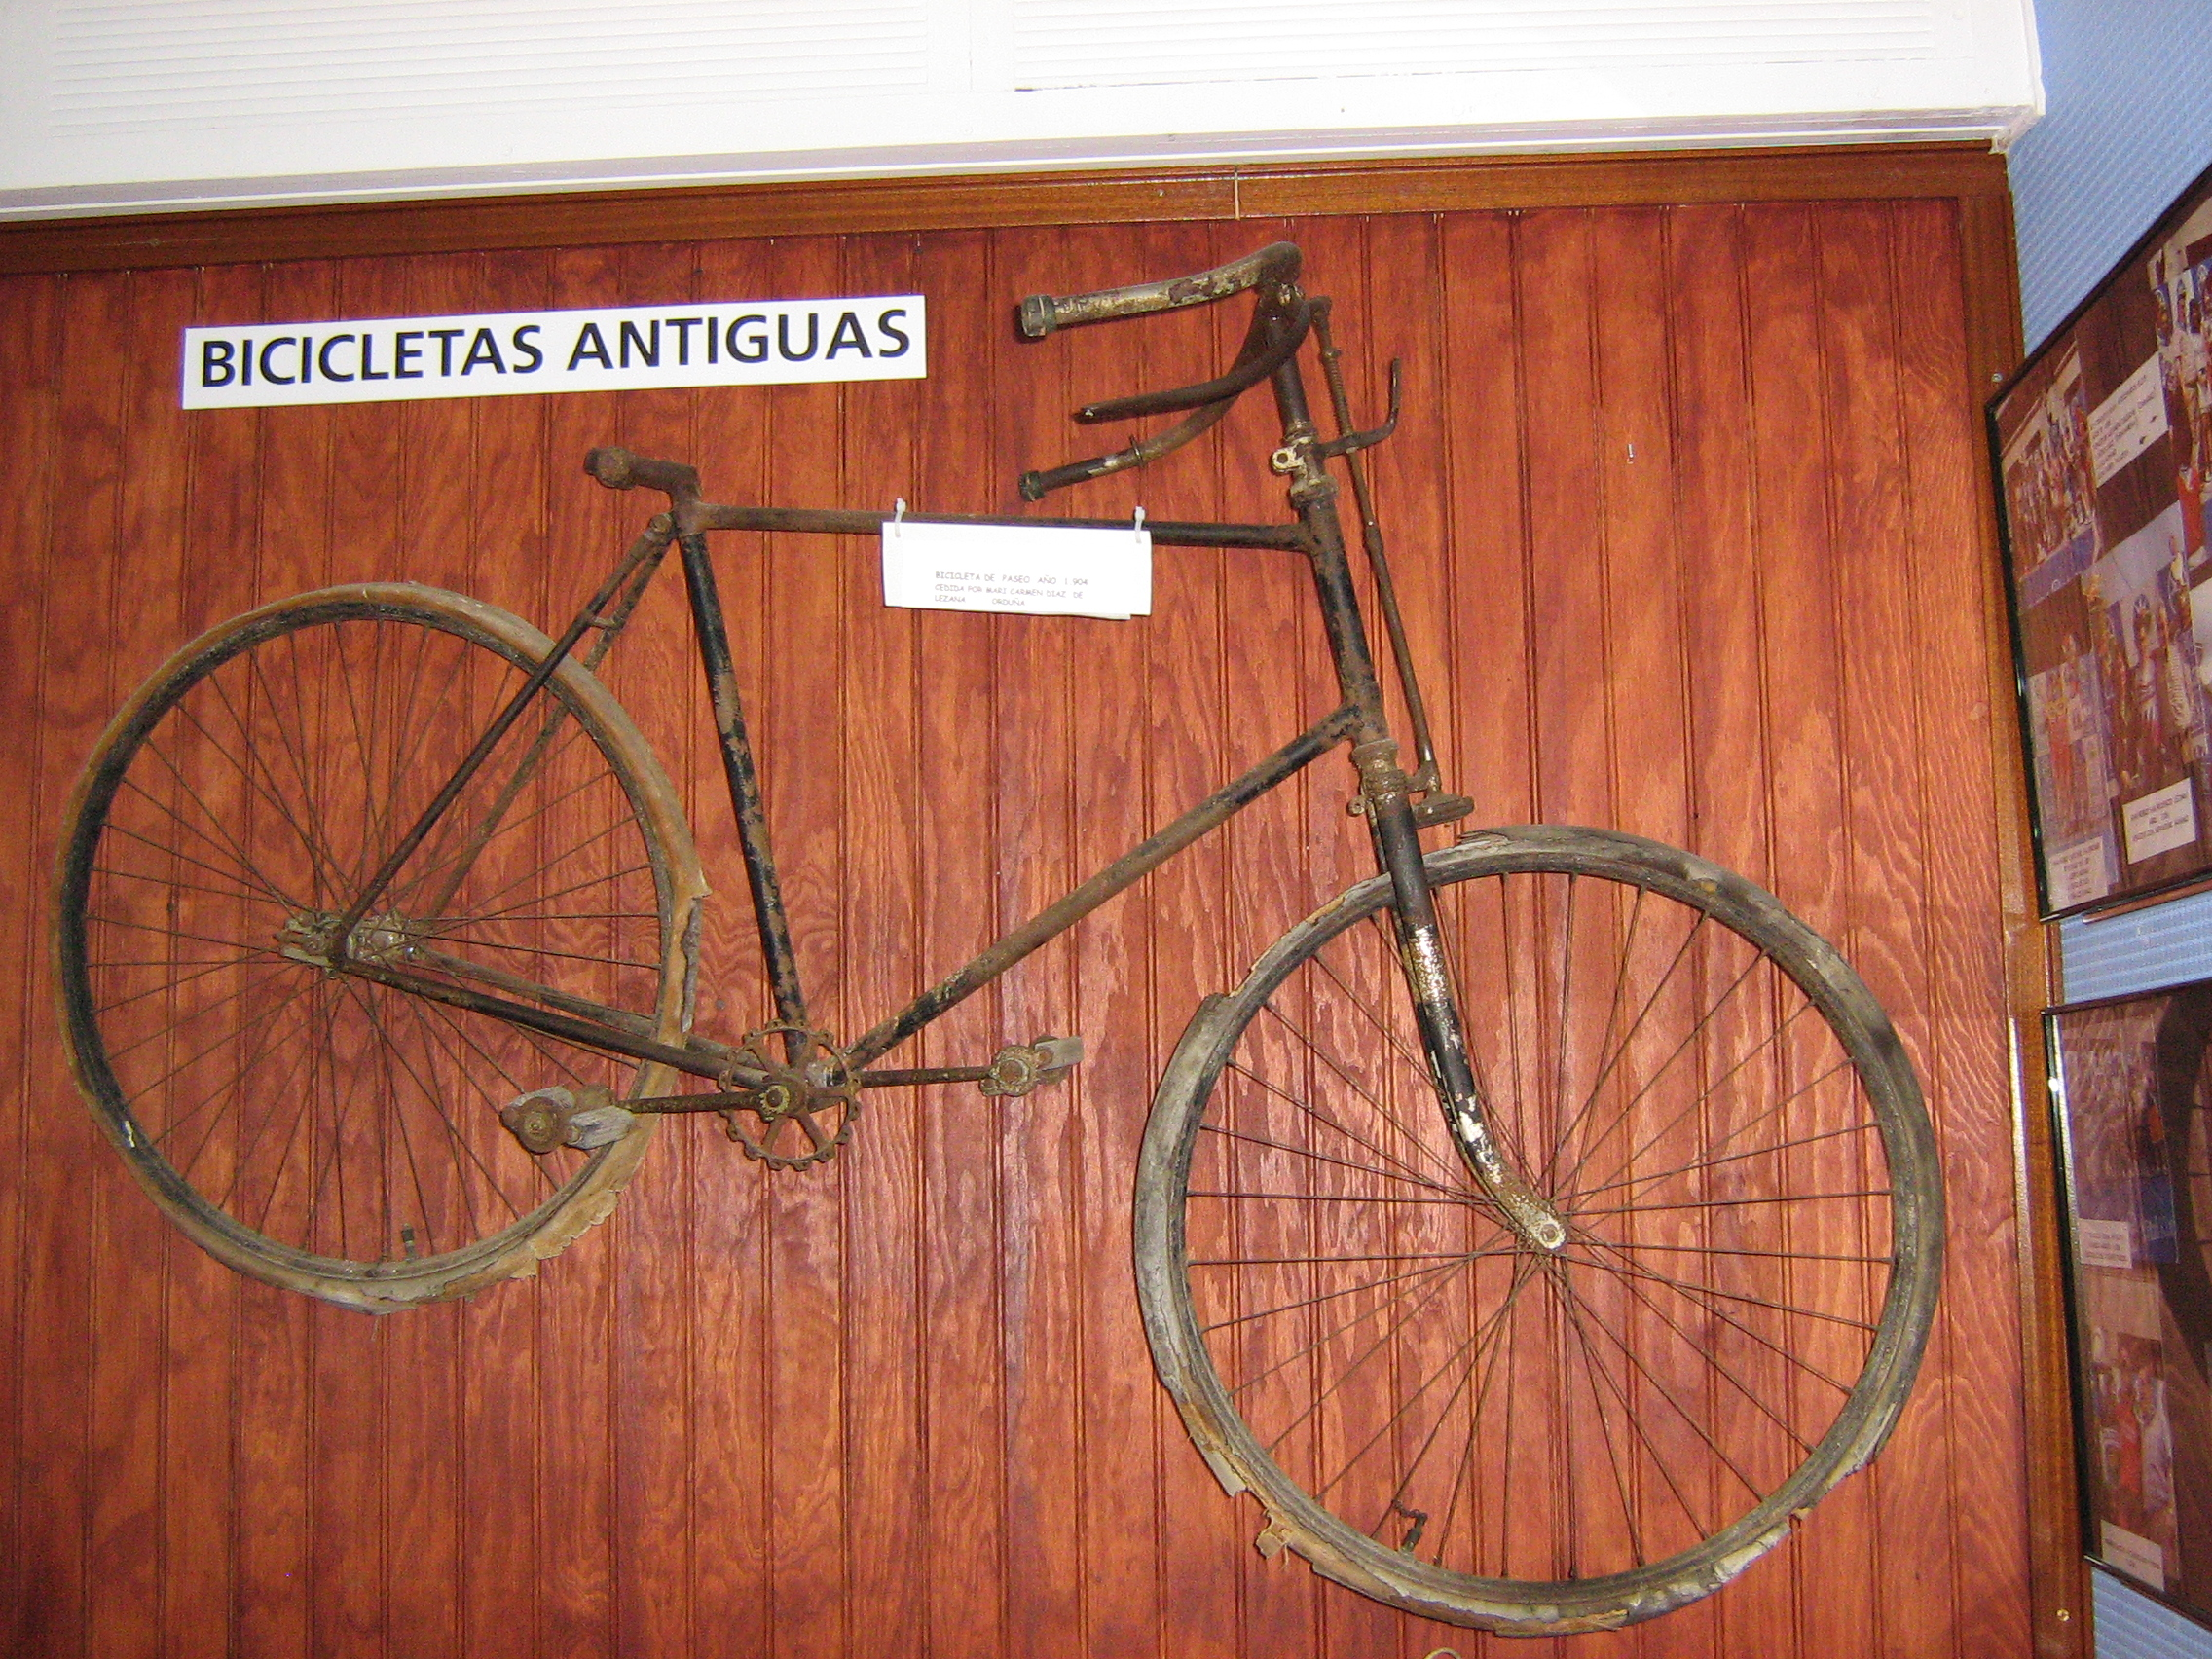 The Bicycle Museum